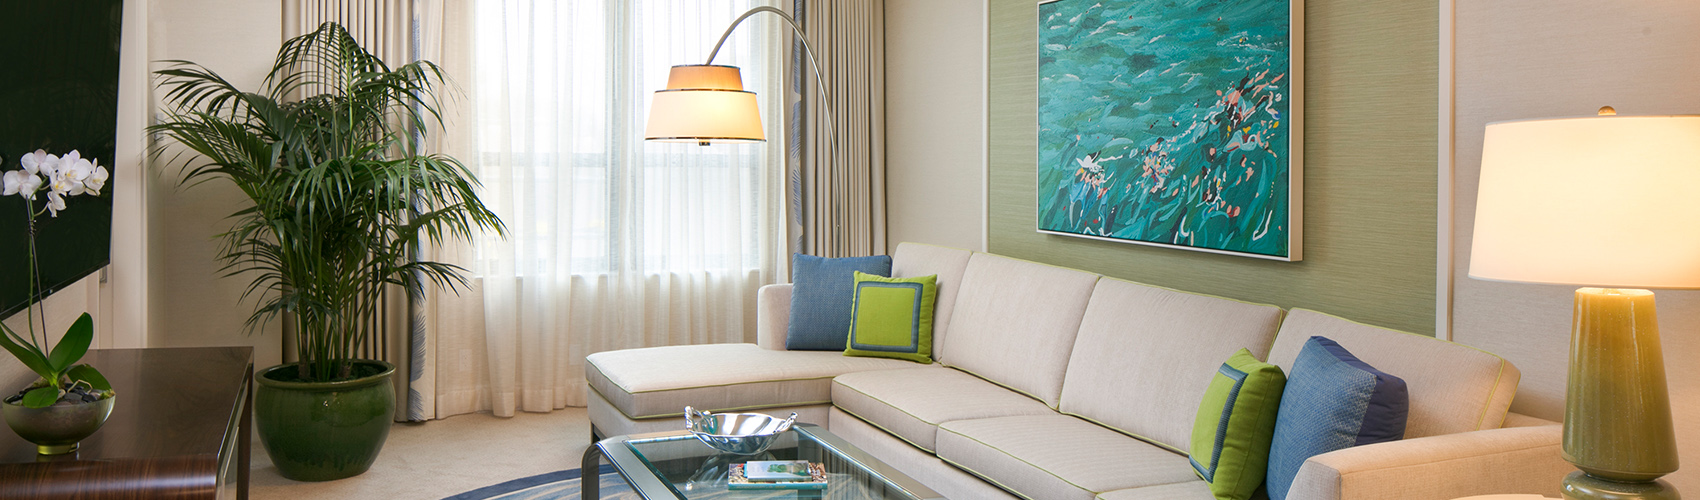 Accessible Suite Limited View Living Room